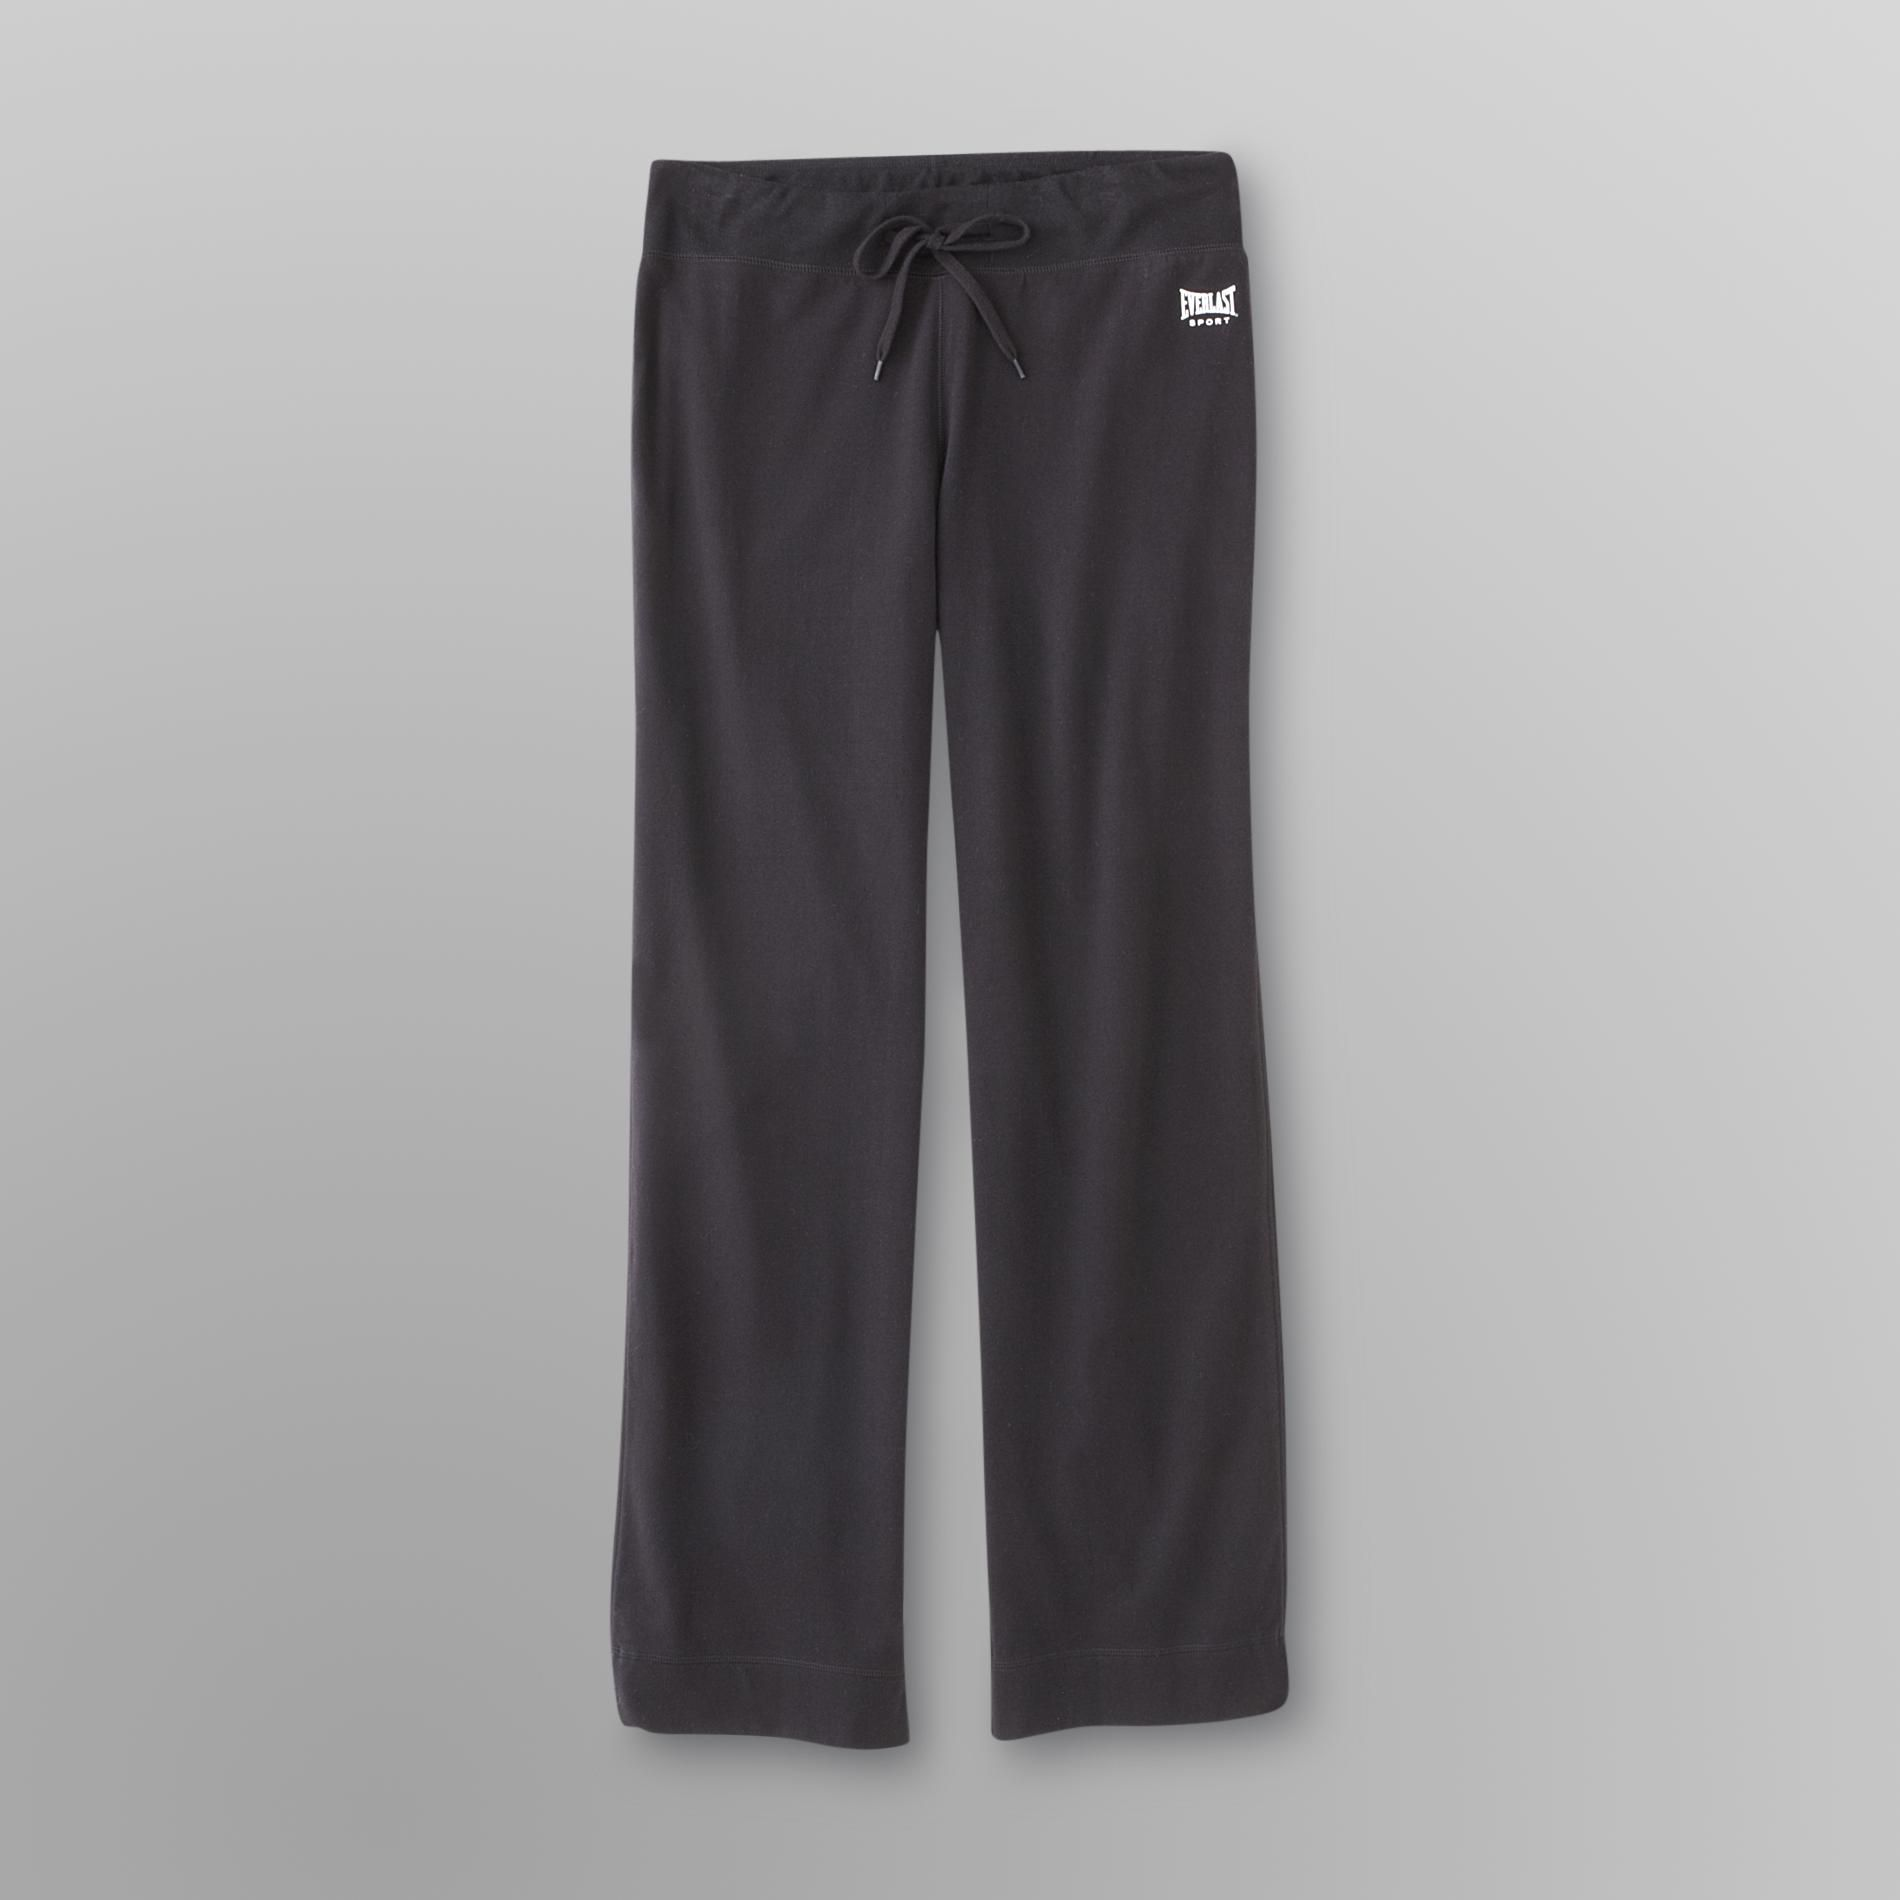 Everlast Sport Womens Relaxed Fit Athletic Pants